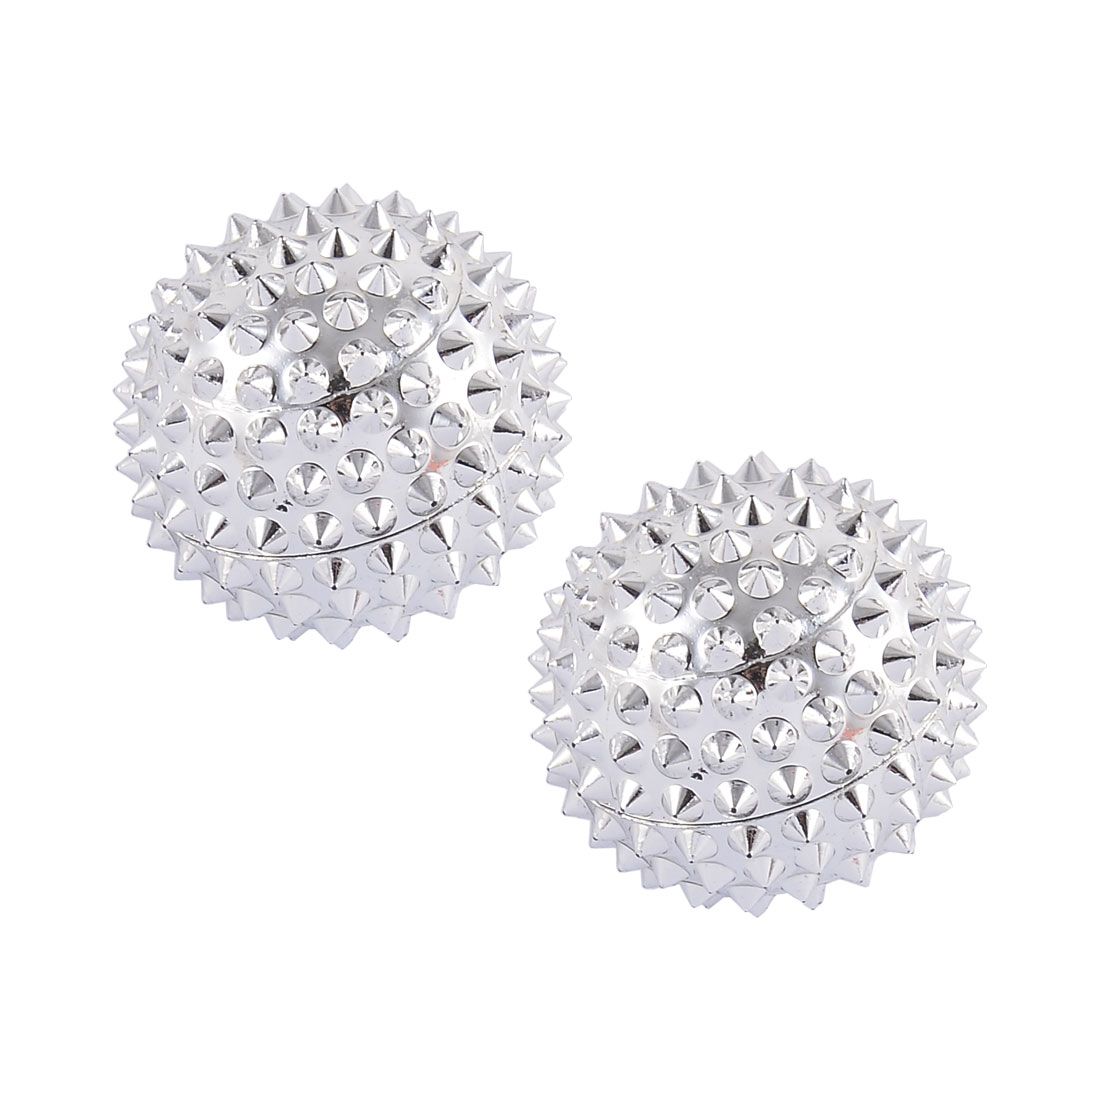 2pcs 32mm Diameter Silver Tone Spiky Magnetic Hand Palm Acupuncture Balls Needle Massage